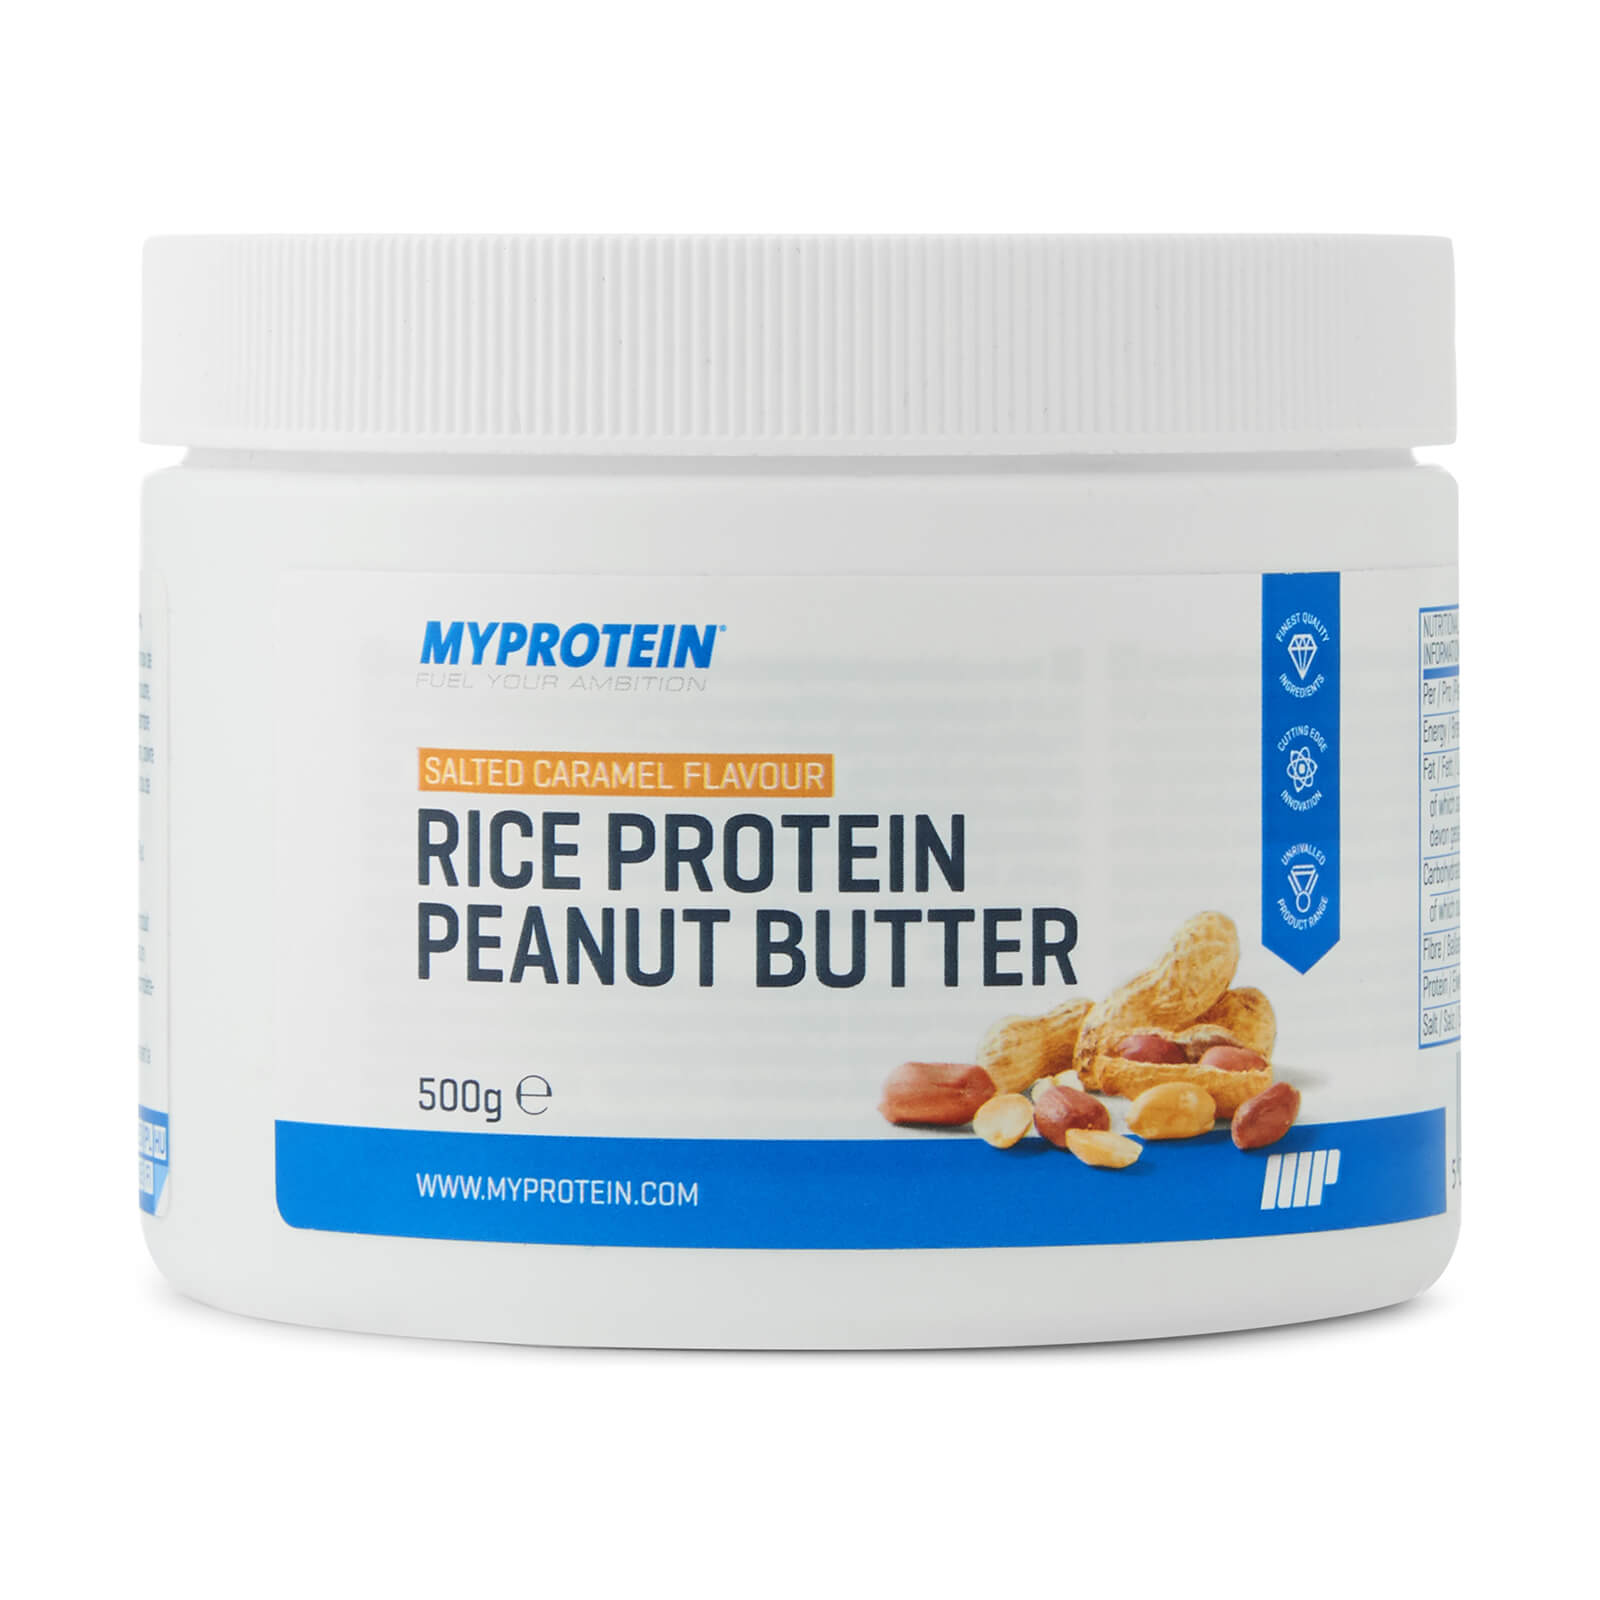 Rice Protein Peanut Butter, Salted Caramel, 500g